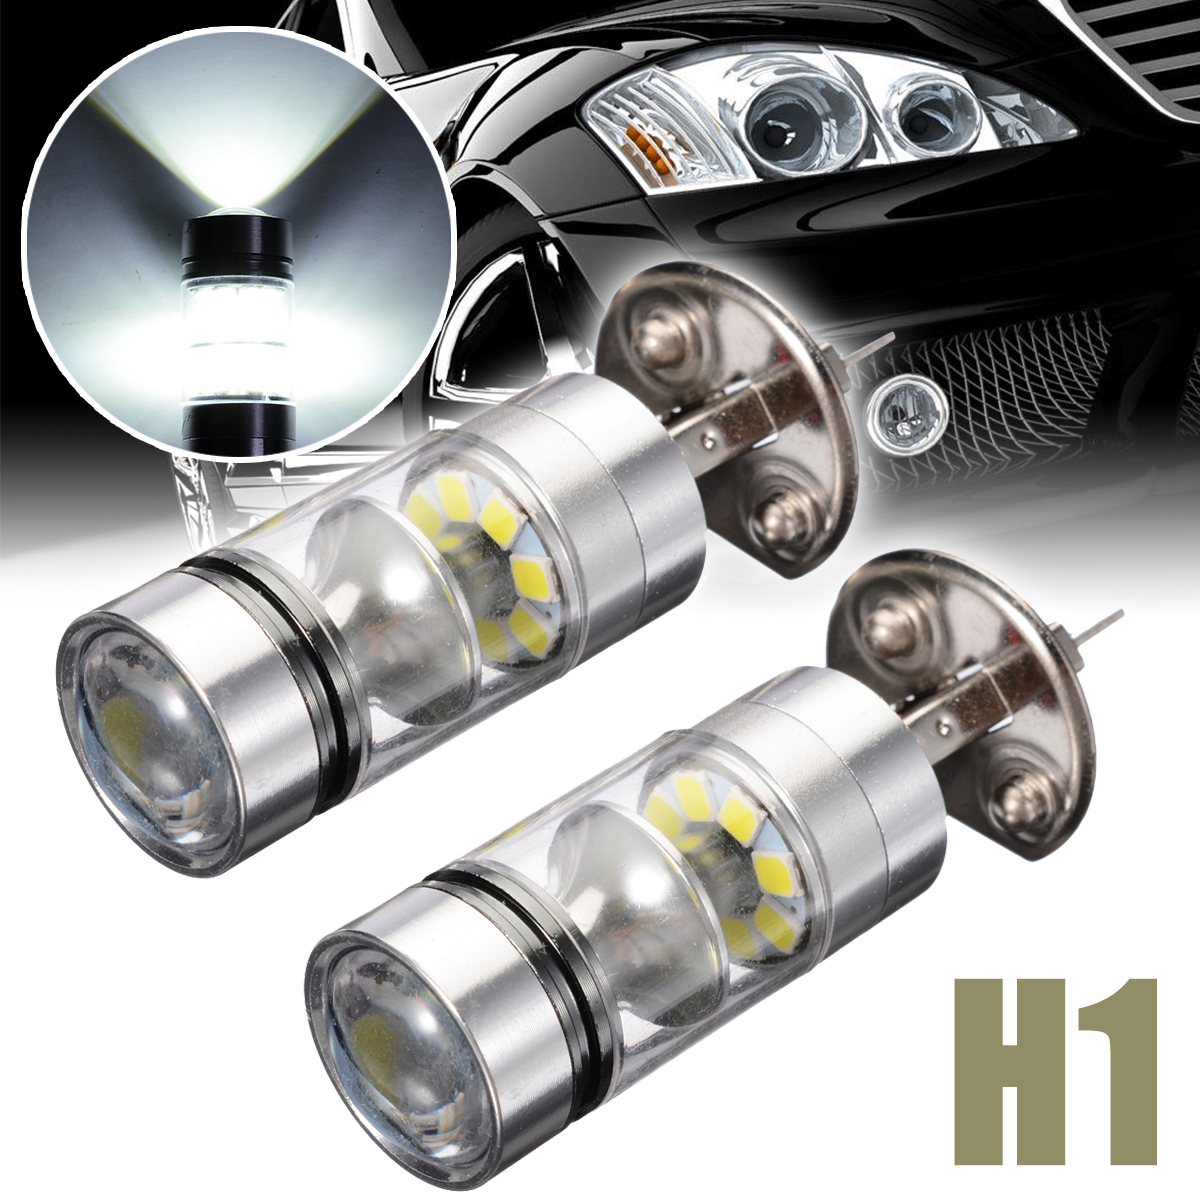 Treyues 2pcs H1 100W 2828 20LED 1000LM Car Fog Driving Light Day-time Running Motorcycle Head Lamp Bulb White